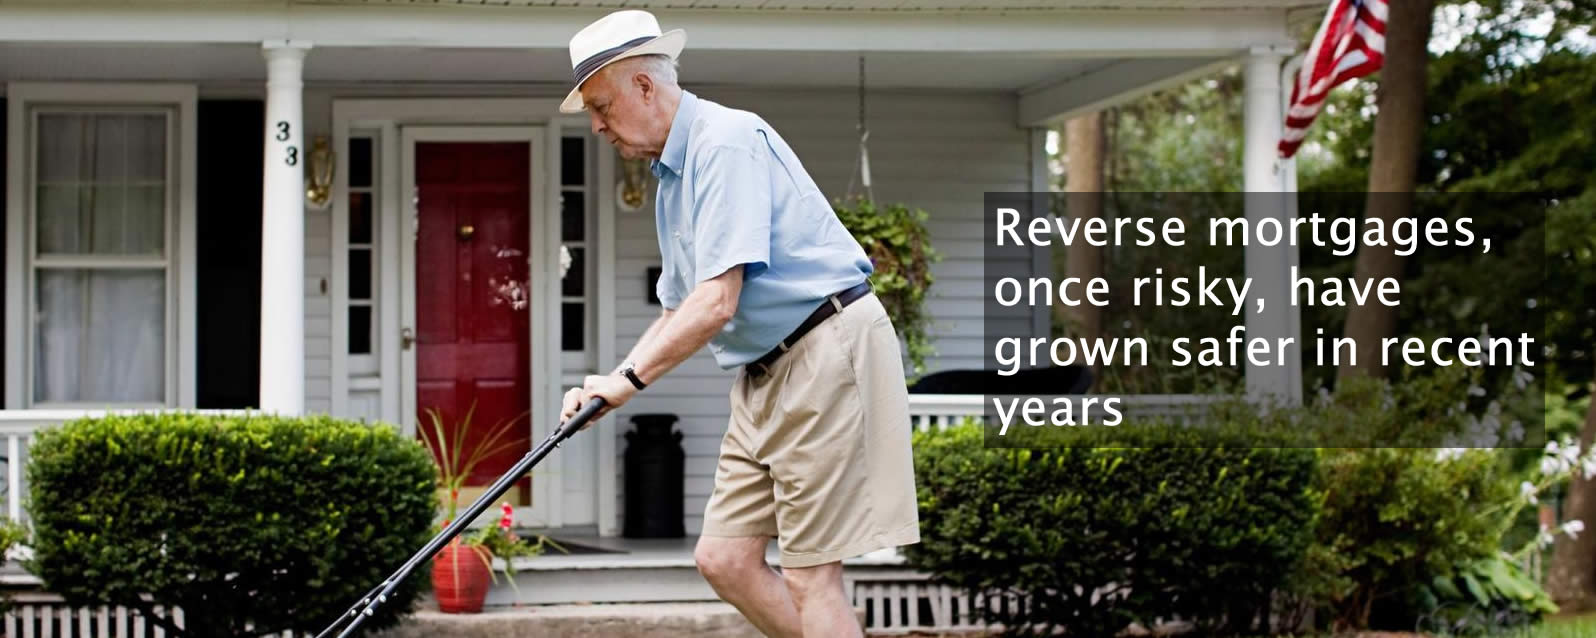 Reverse mortgages, once risky, have grown safer in recent years